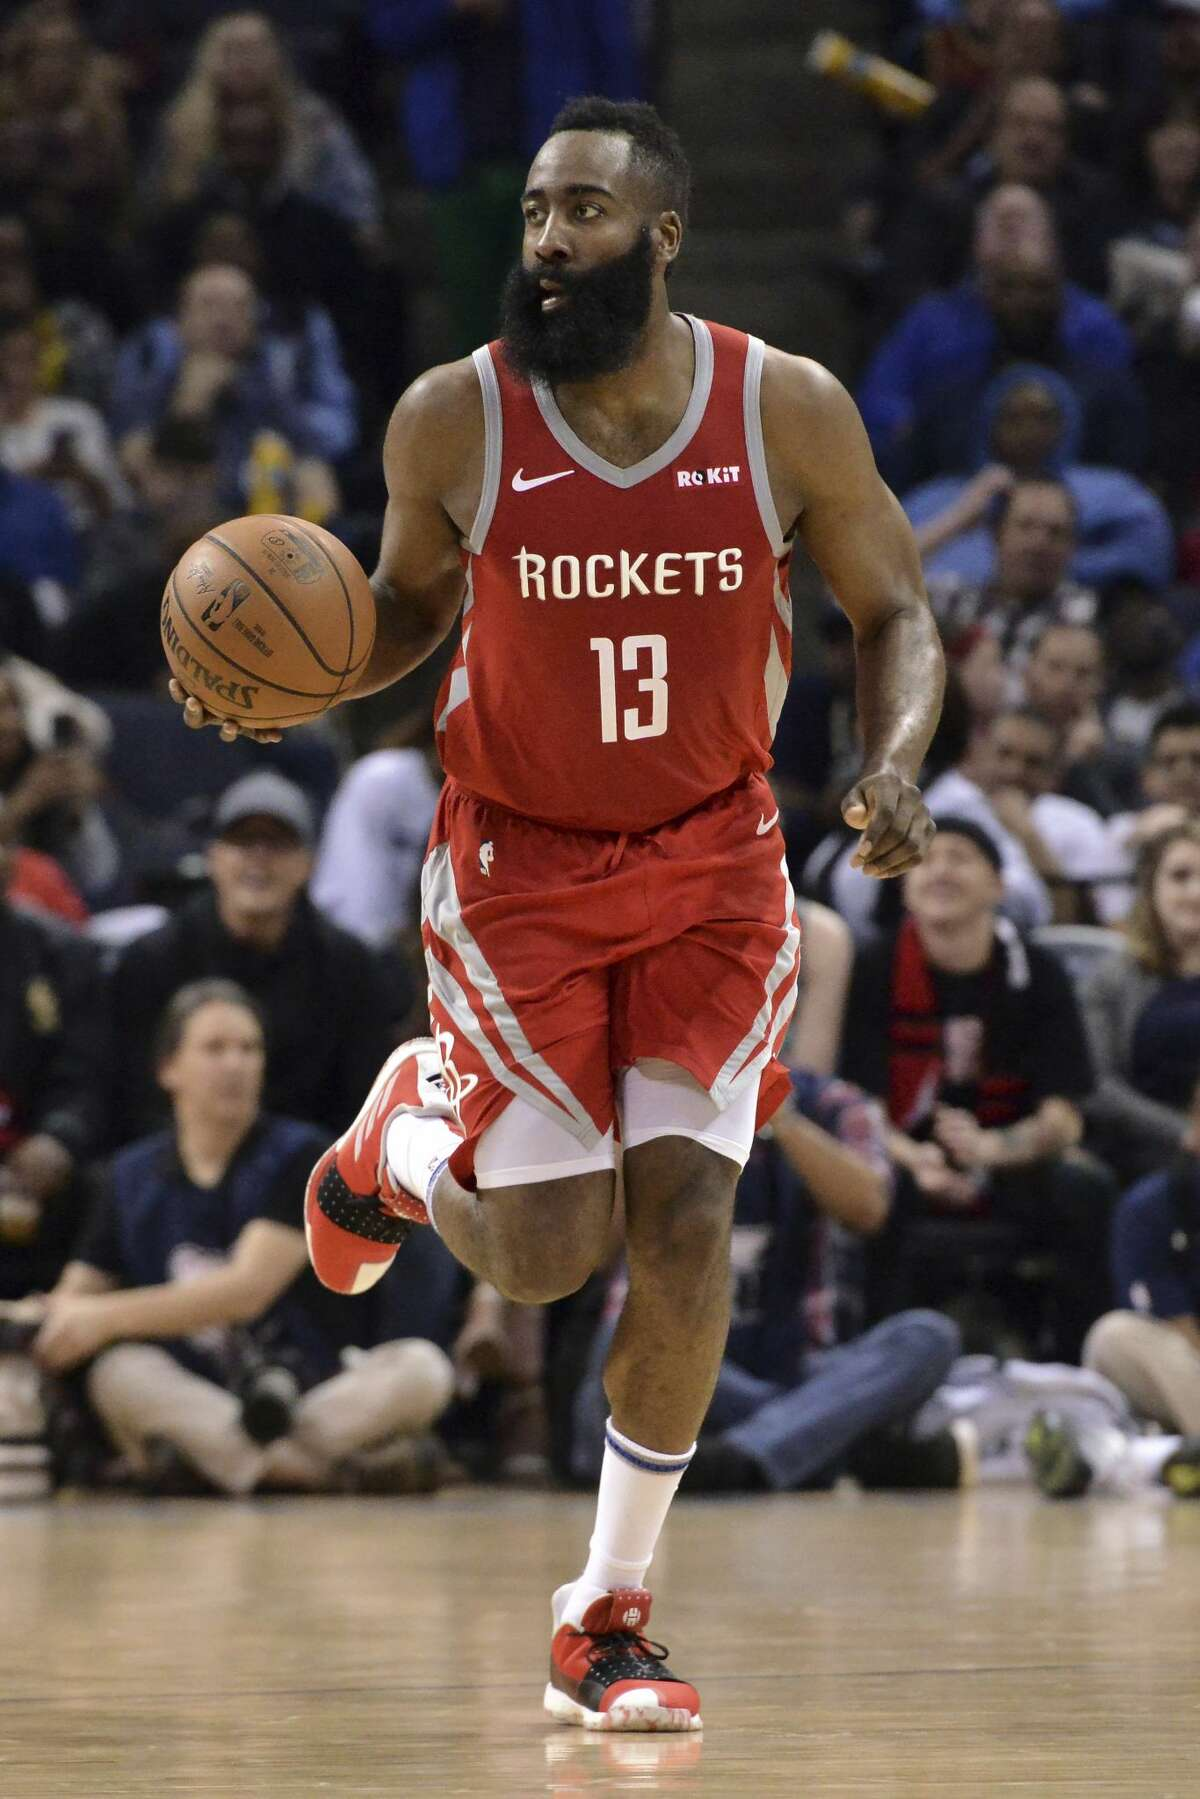 Houston Rockets guard James Harden (13) brings the ball up court in the second half of an NBA basketball game against the Memphis Grizzlies Wednesday, March 20, 2019, in Memphis, Tenn. (AP Photo/Brandon Dill)